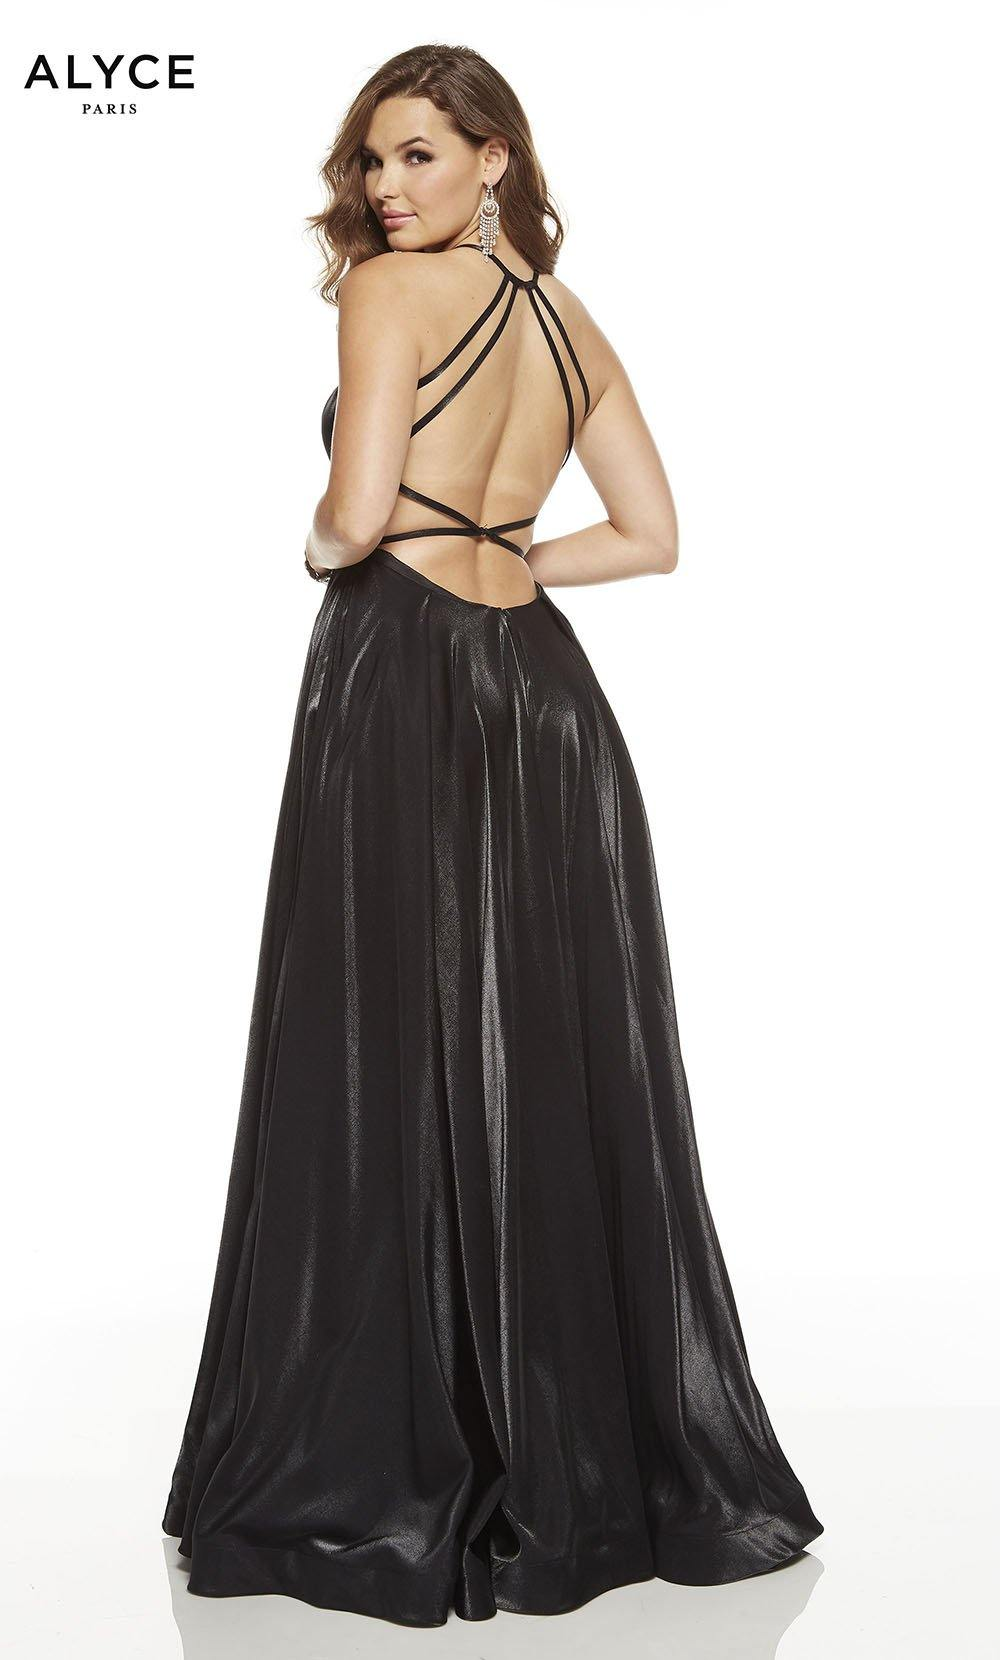 Black red-carpet dress with a strappy back